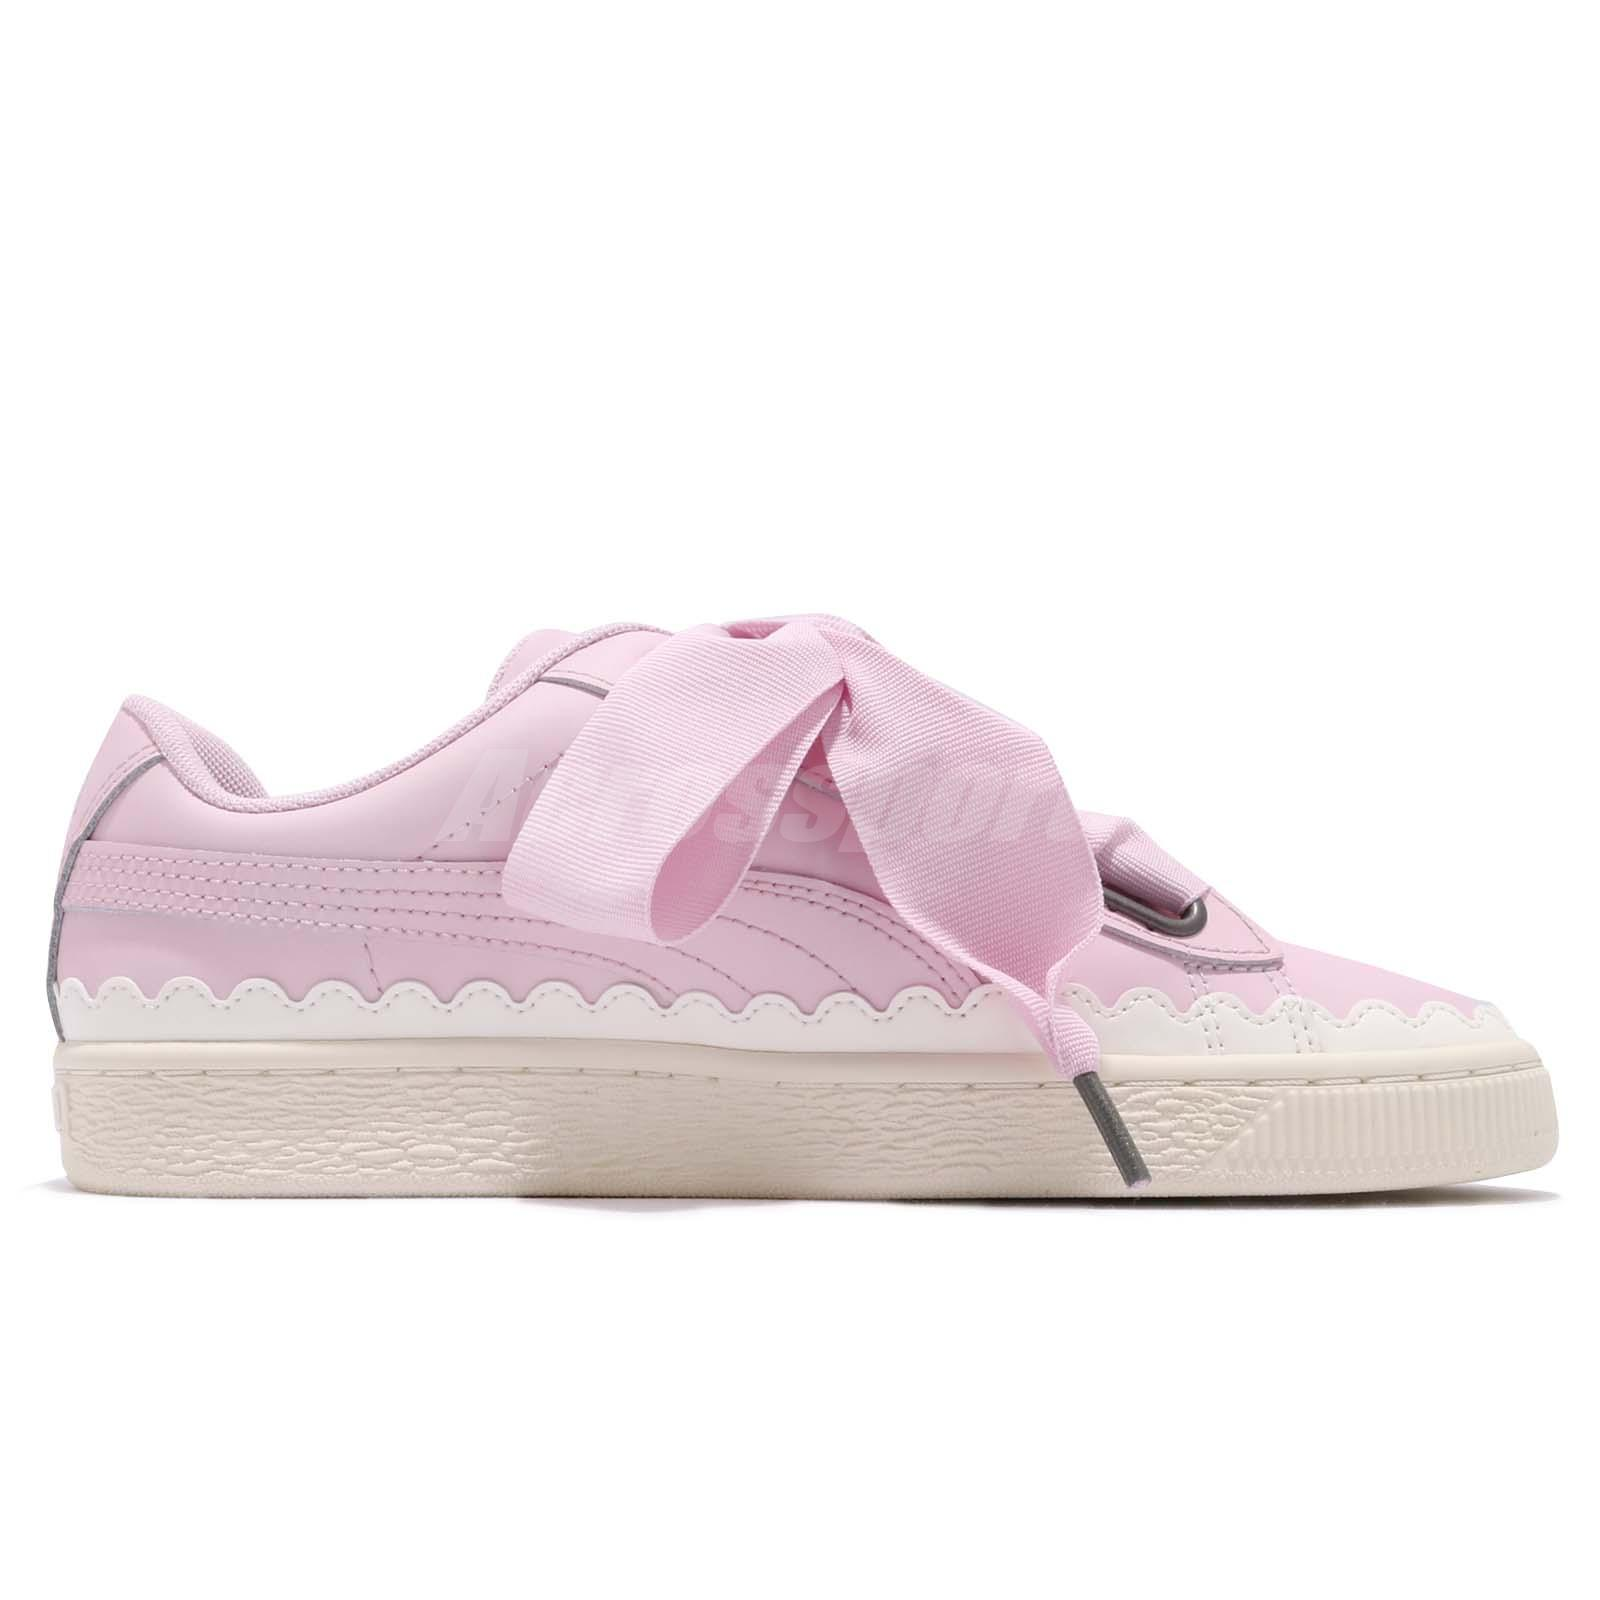 Puma Basket Heart Scallop Wns Winsome Orchid Bow Women Casual Shoes ... fa065b8cd